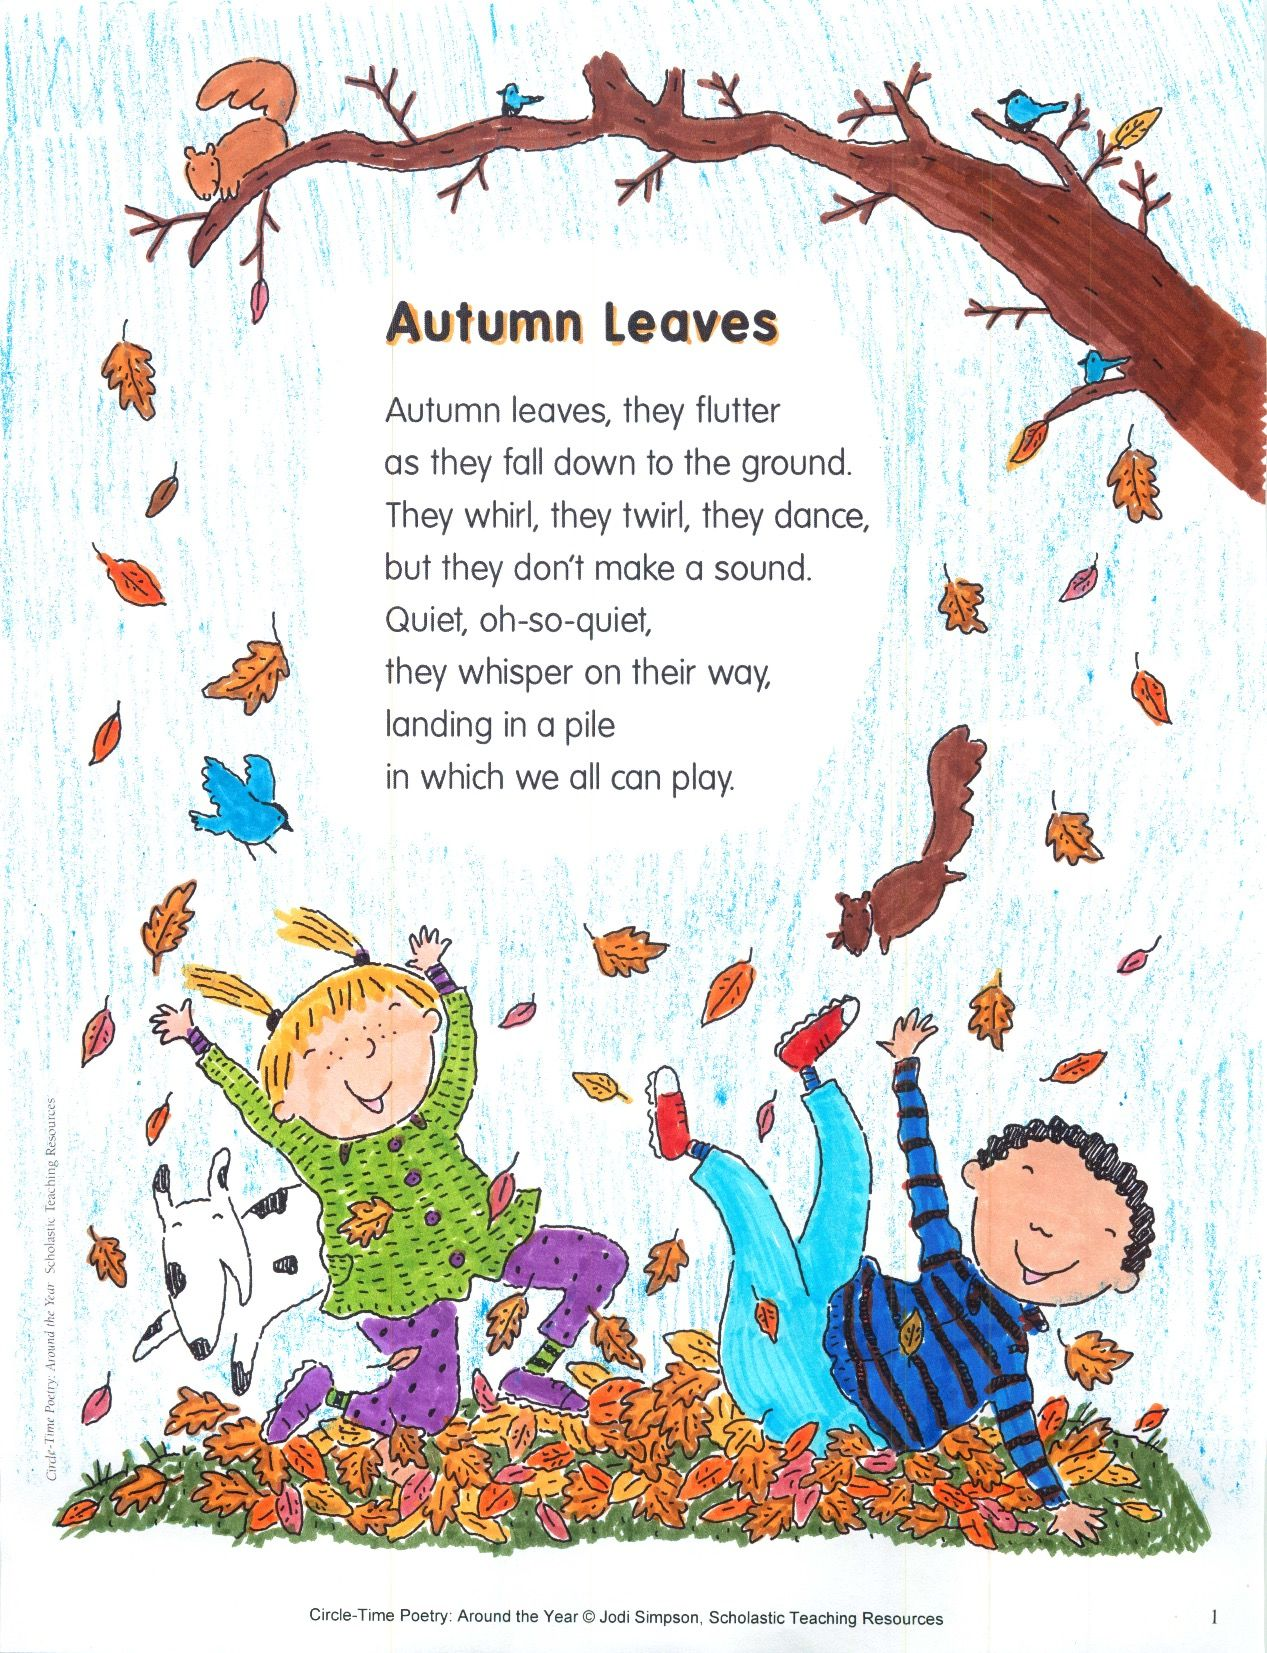 Provide Each Child With A Real Leaf Before Reading The